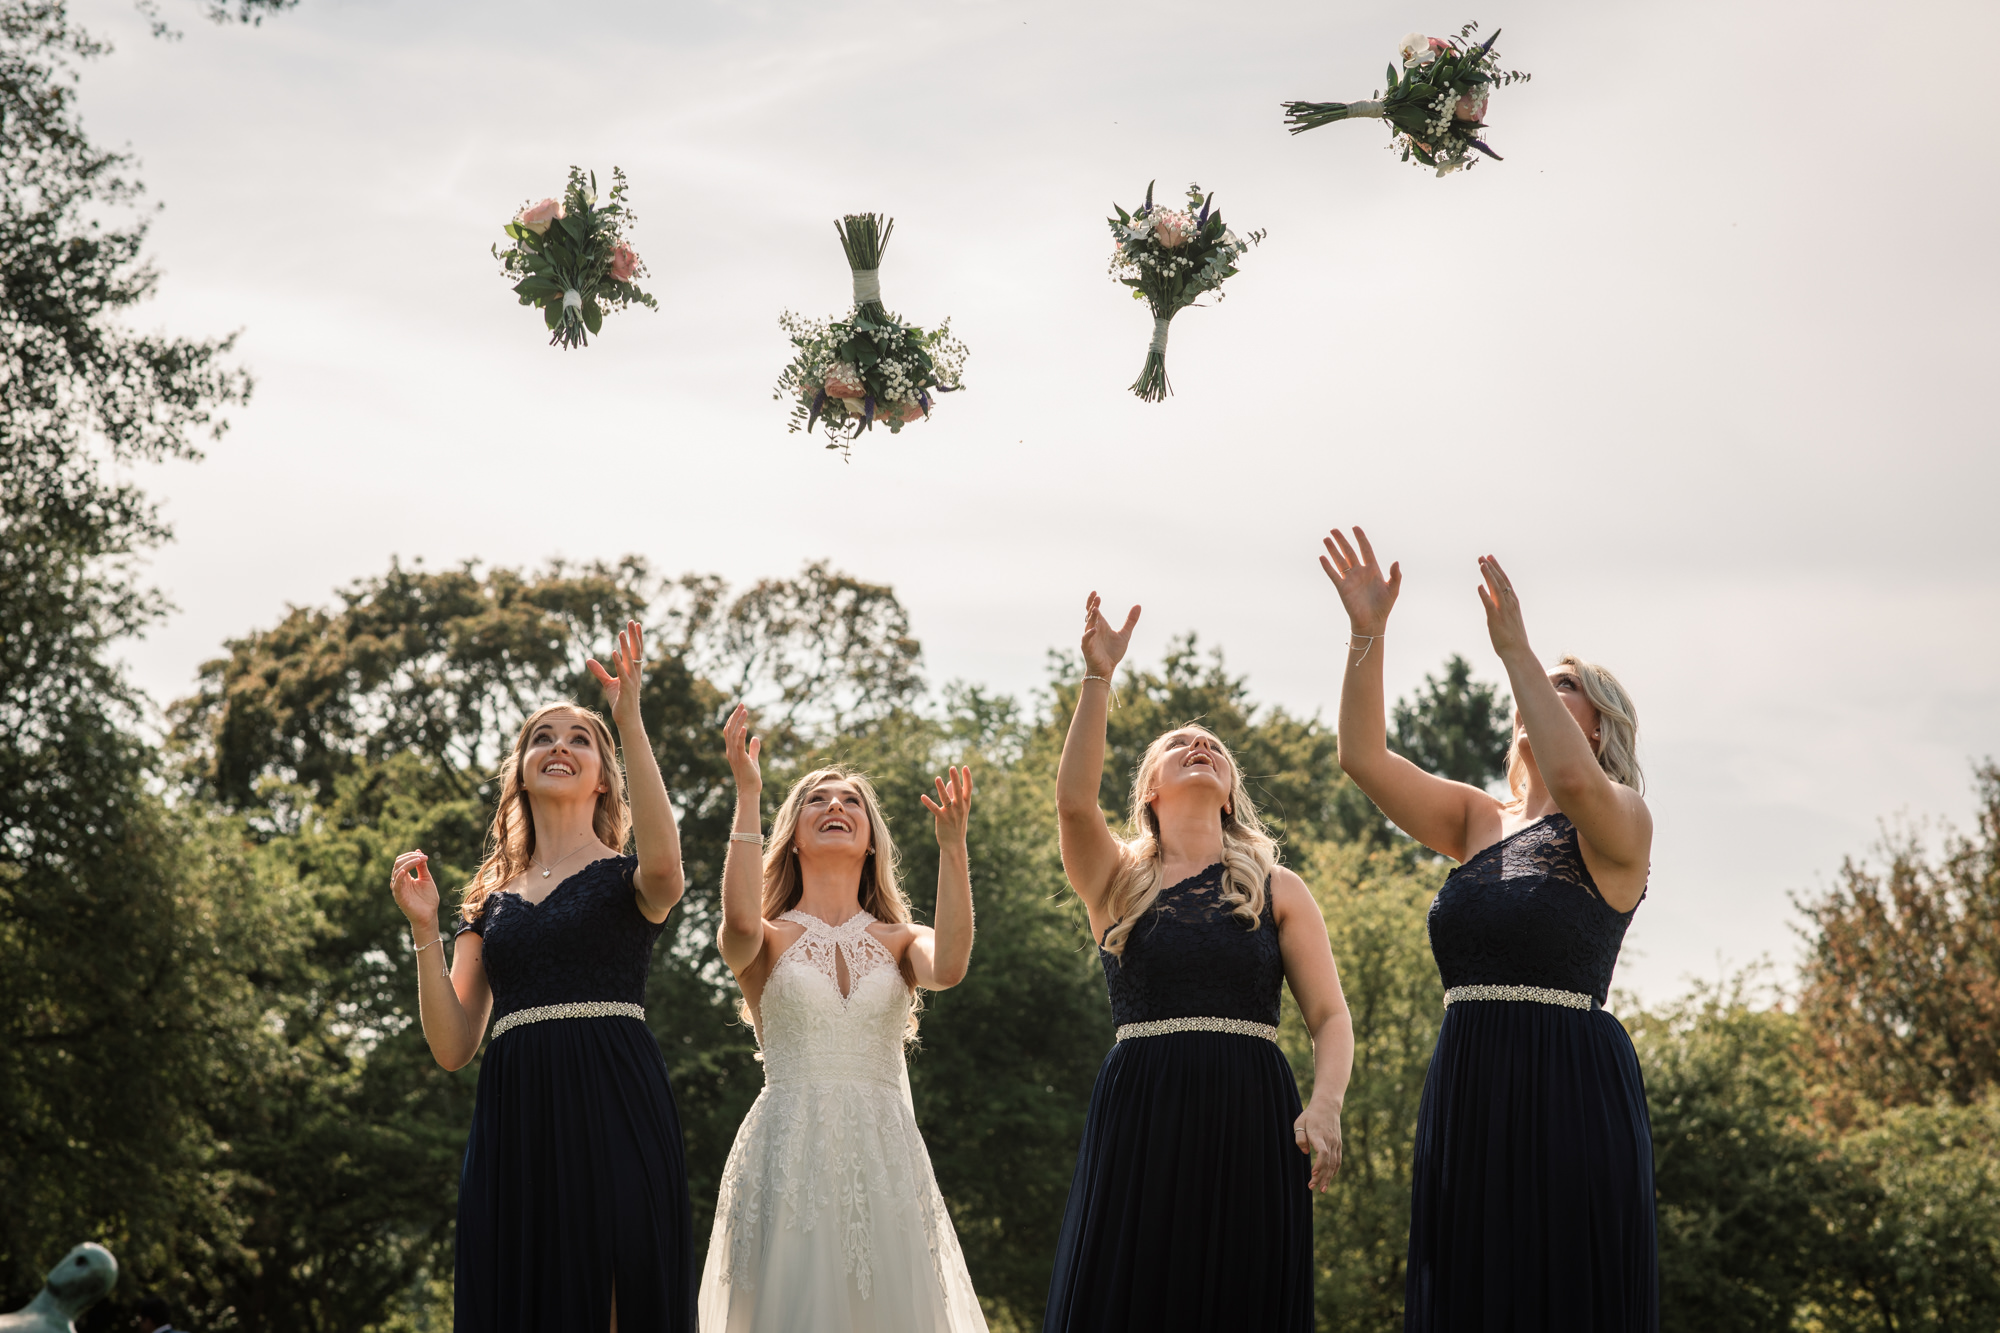 Bride and bridesmaids throwing their wedding bouquets